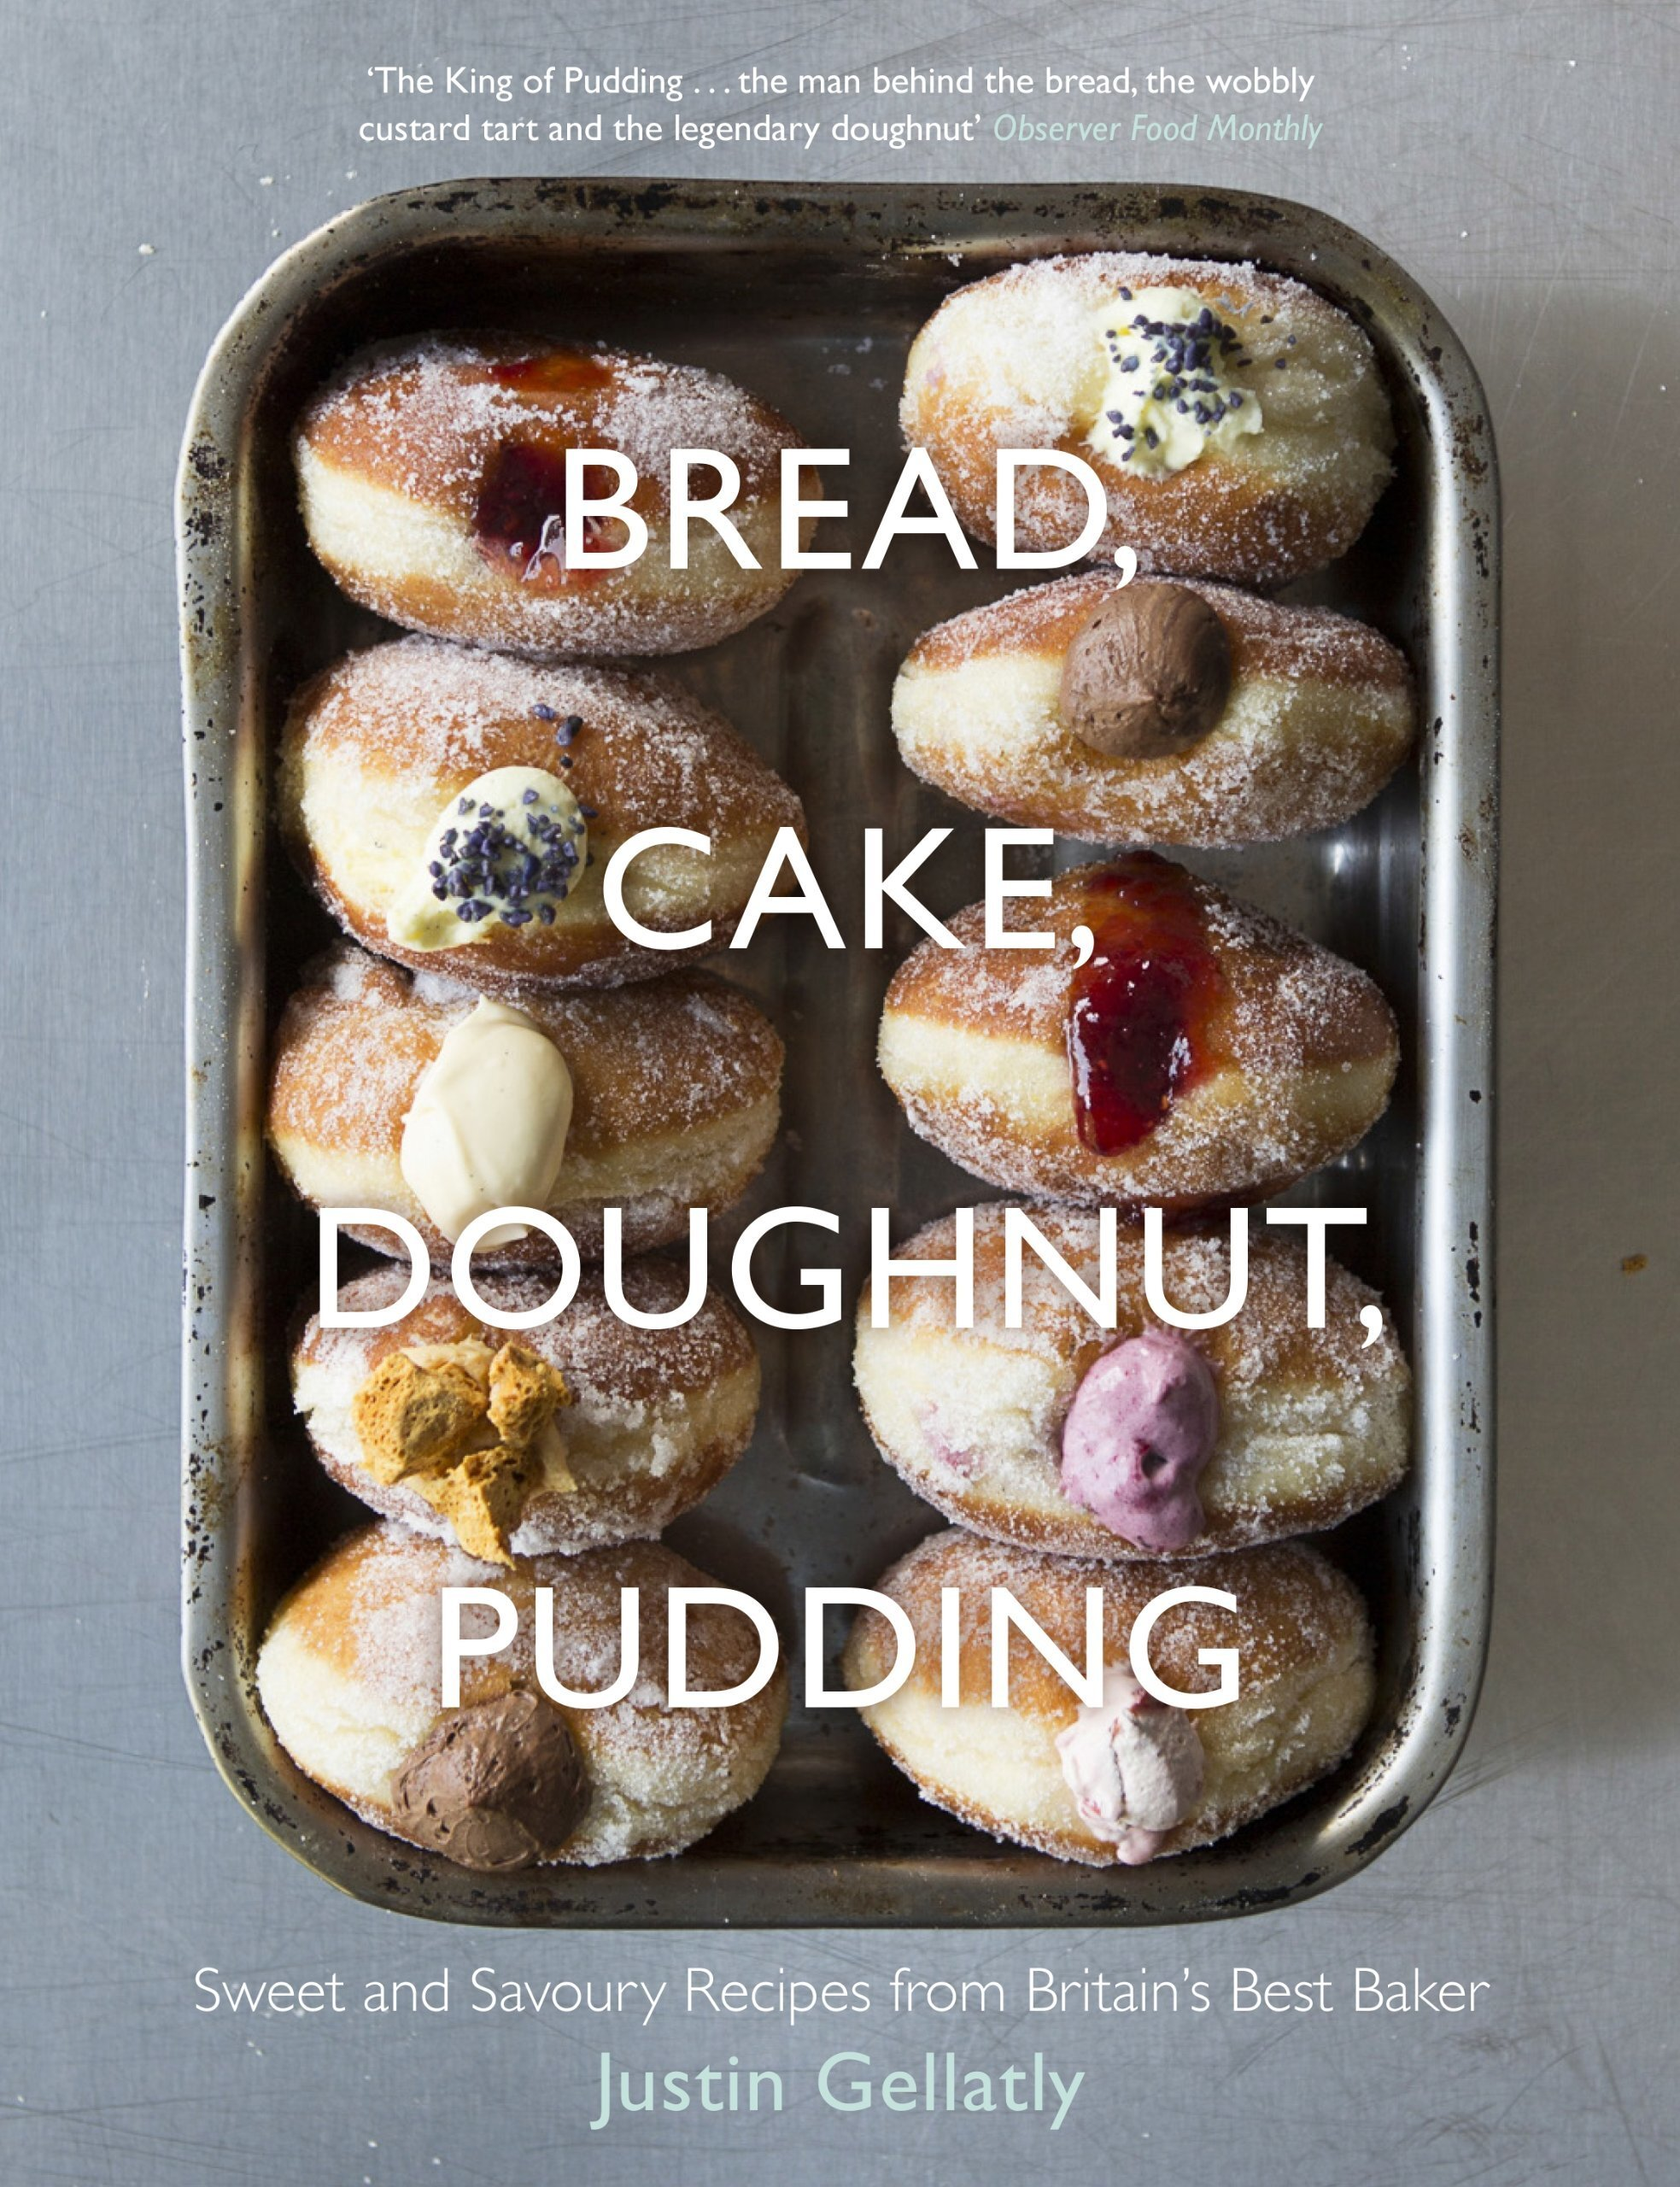 Ep6: Bread, Cake, Doughnut, Pudding by Justin Gellatly